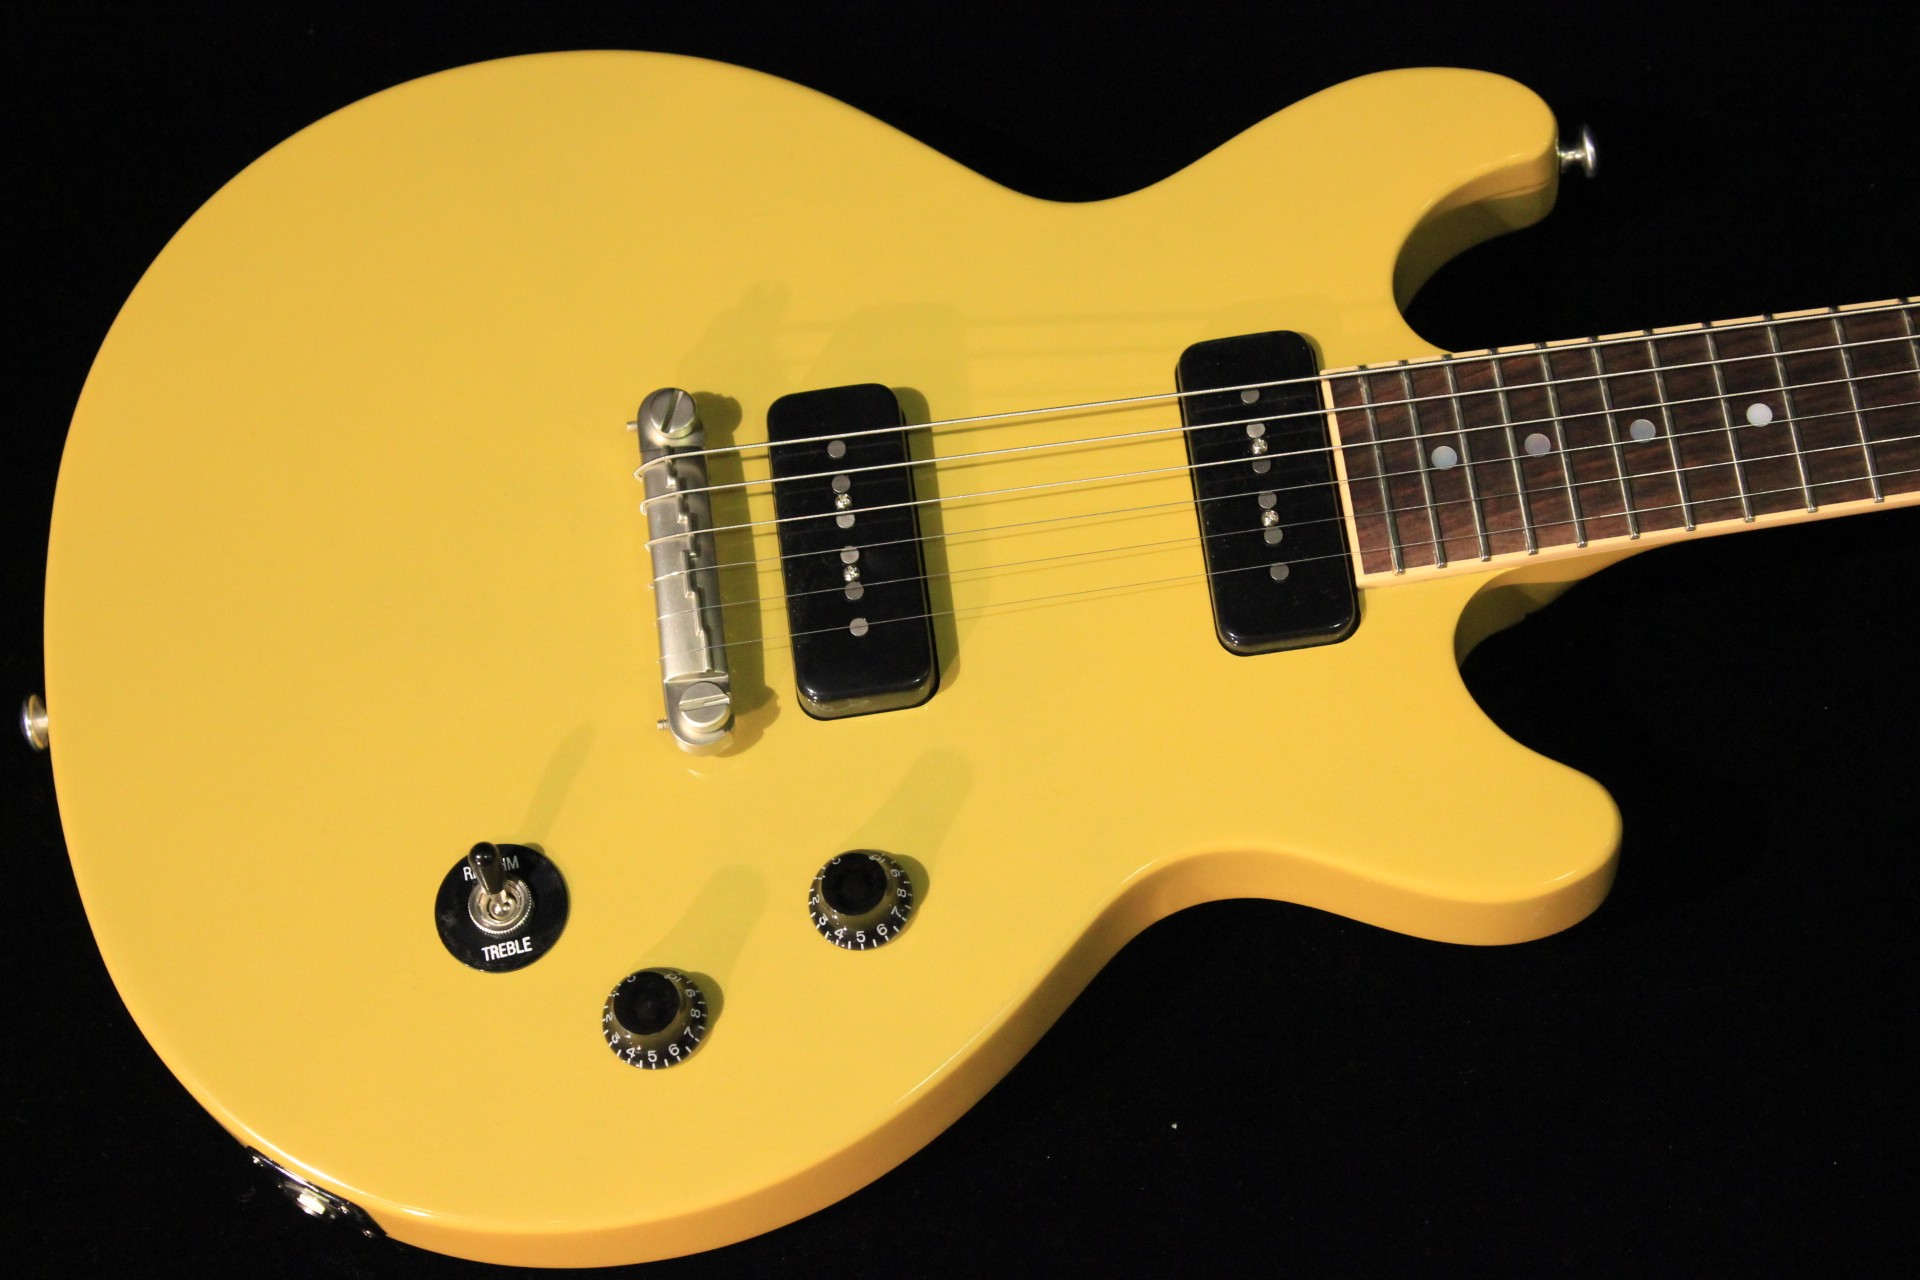 gibson les paul special double cut 2015 gloss yellow sn 150040951 gino guitars. Black Bedroom Furniture Sets. Home Design Ideas